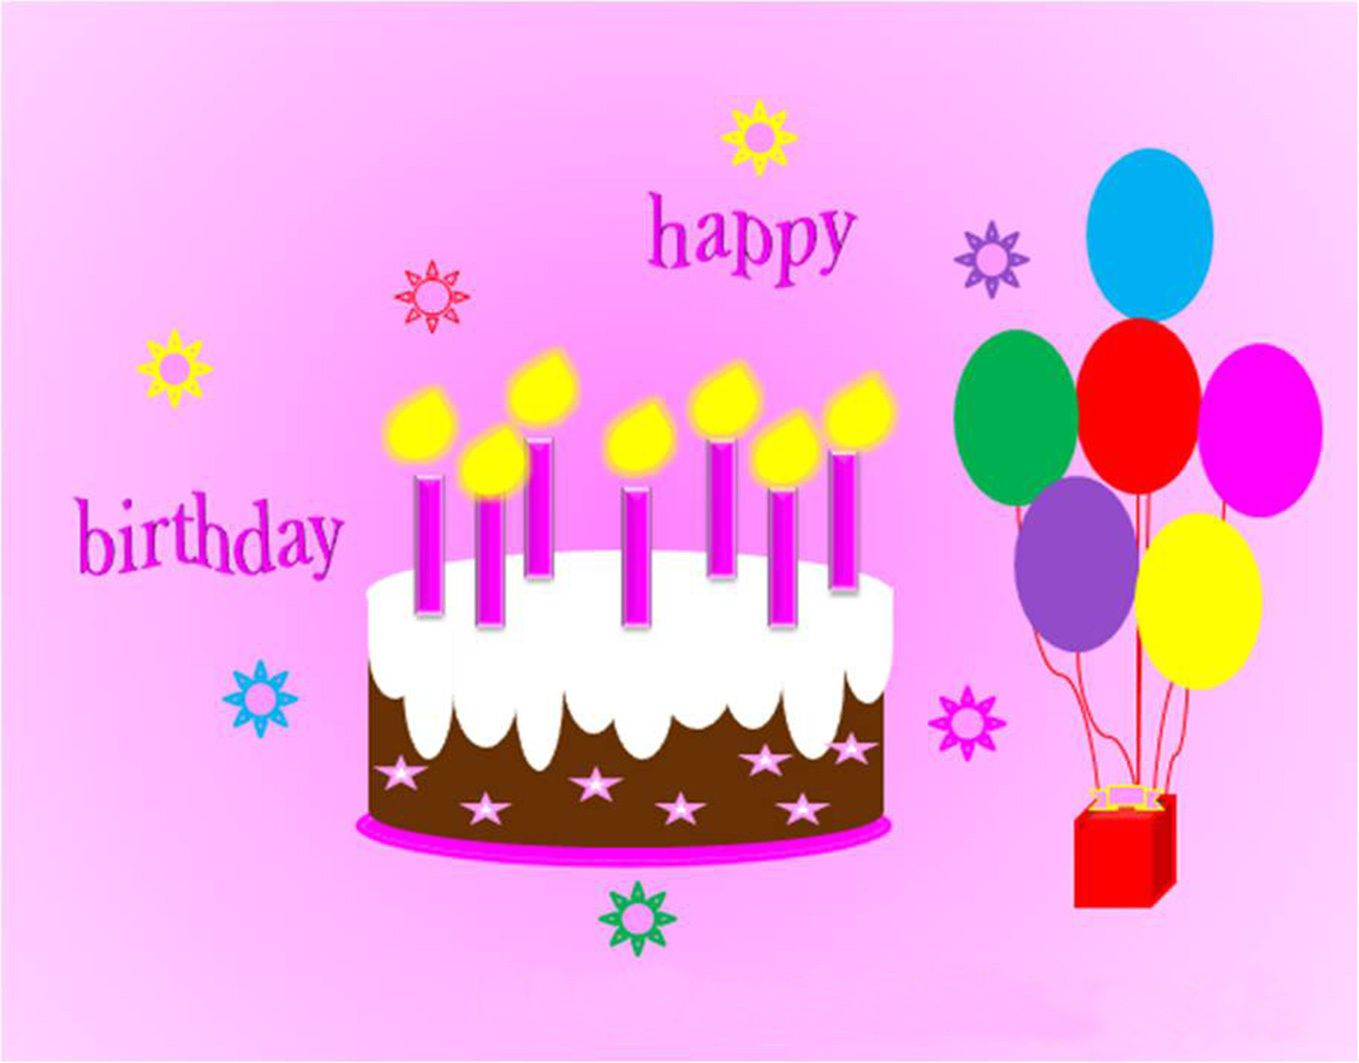 Happy Birthday Cards Happy Birthday Cards Holidays Pinterest